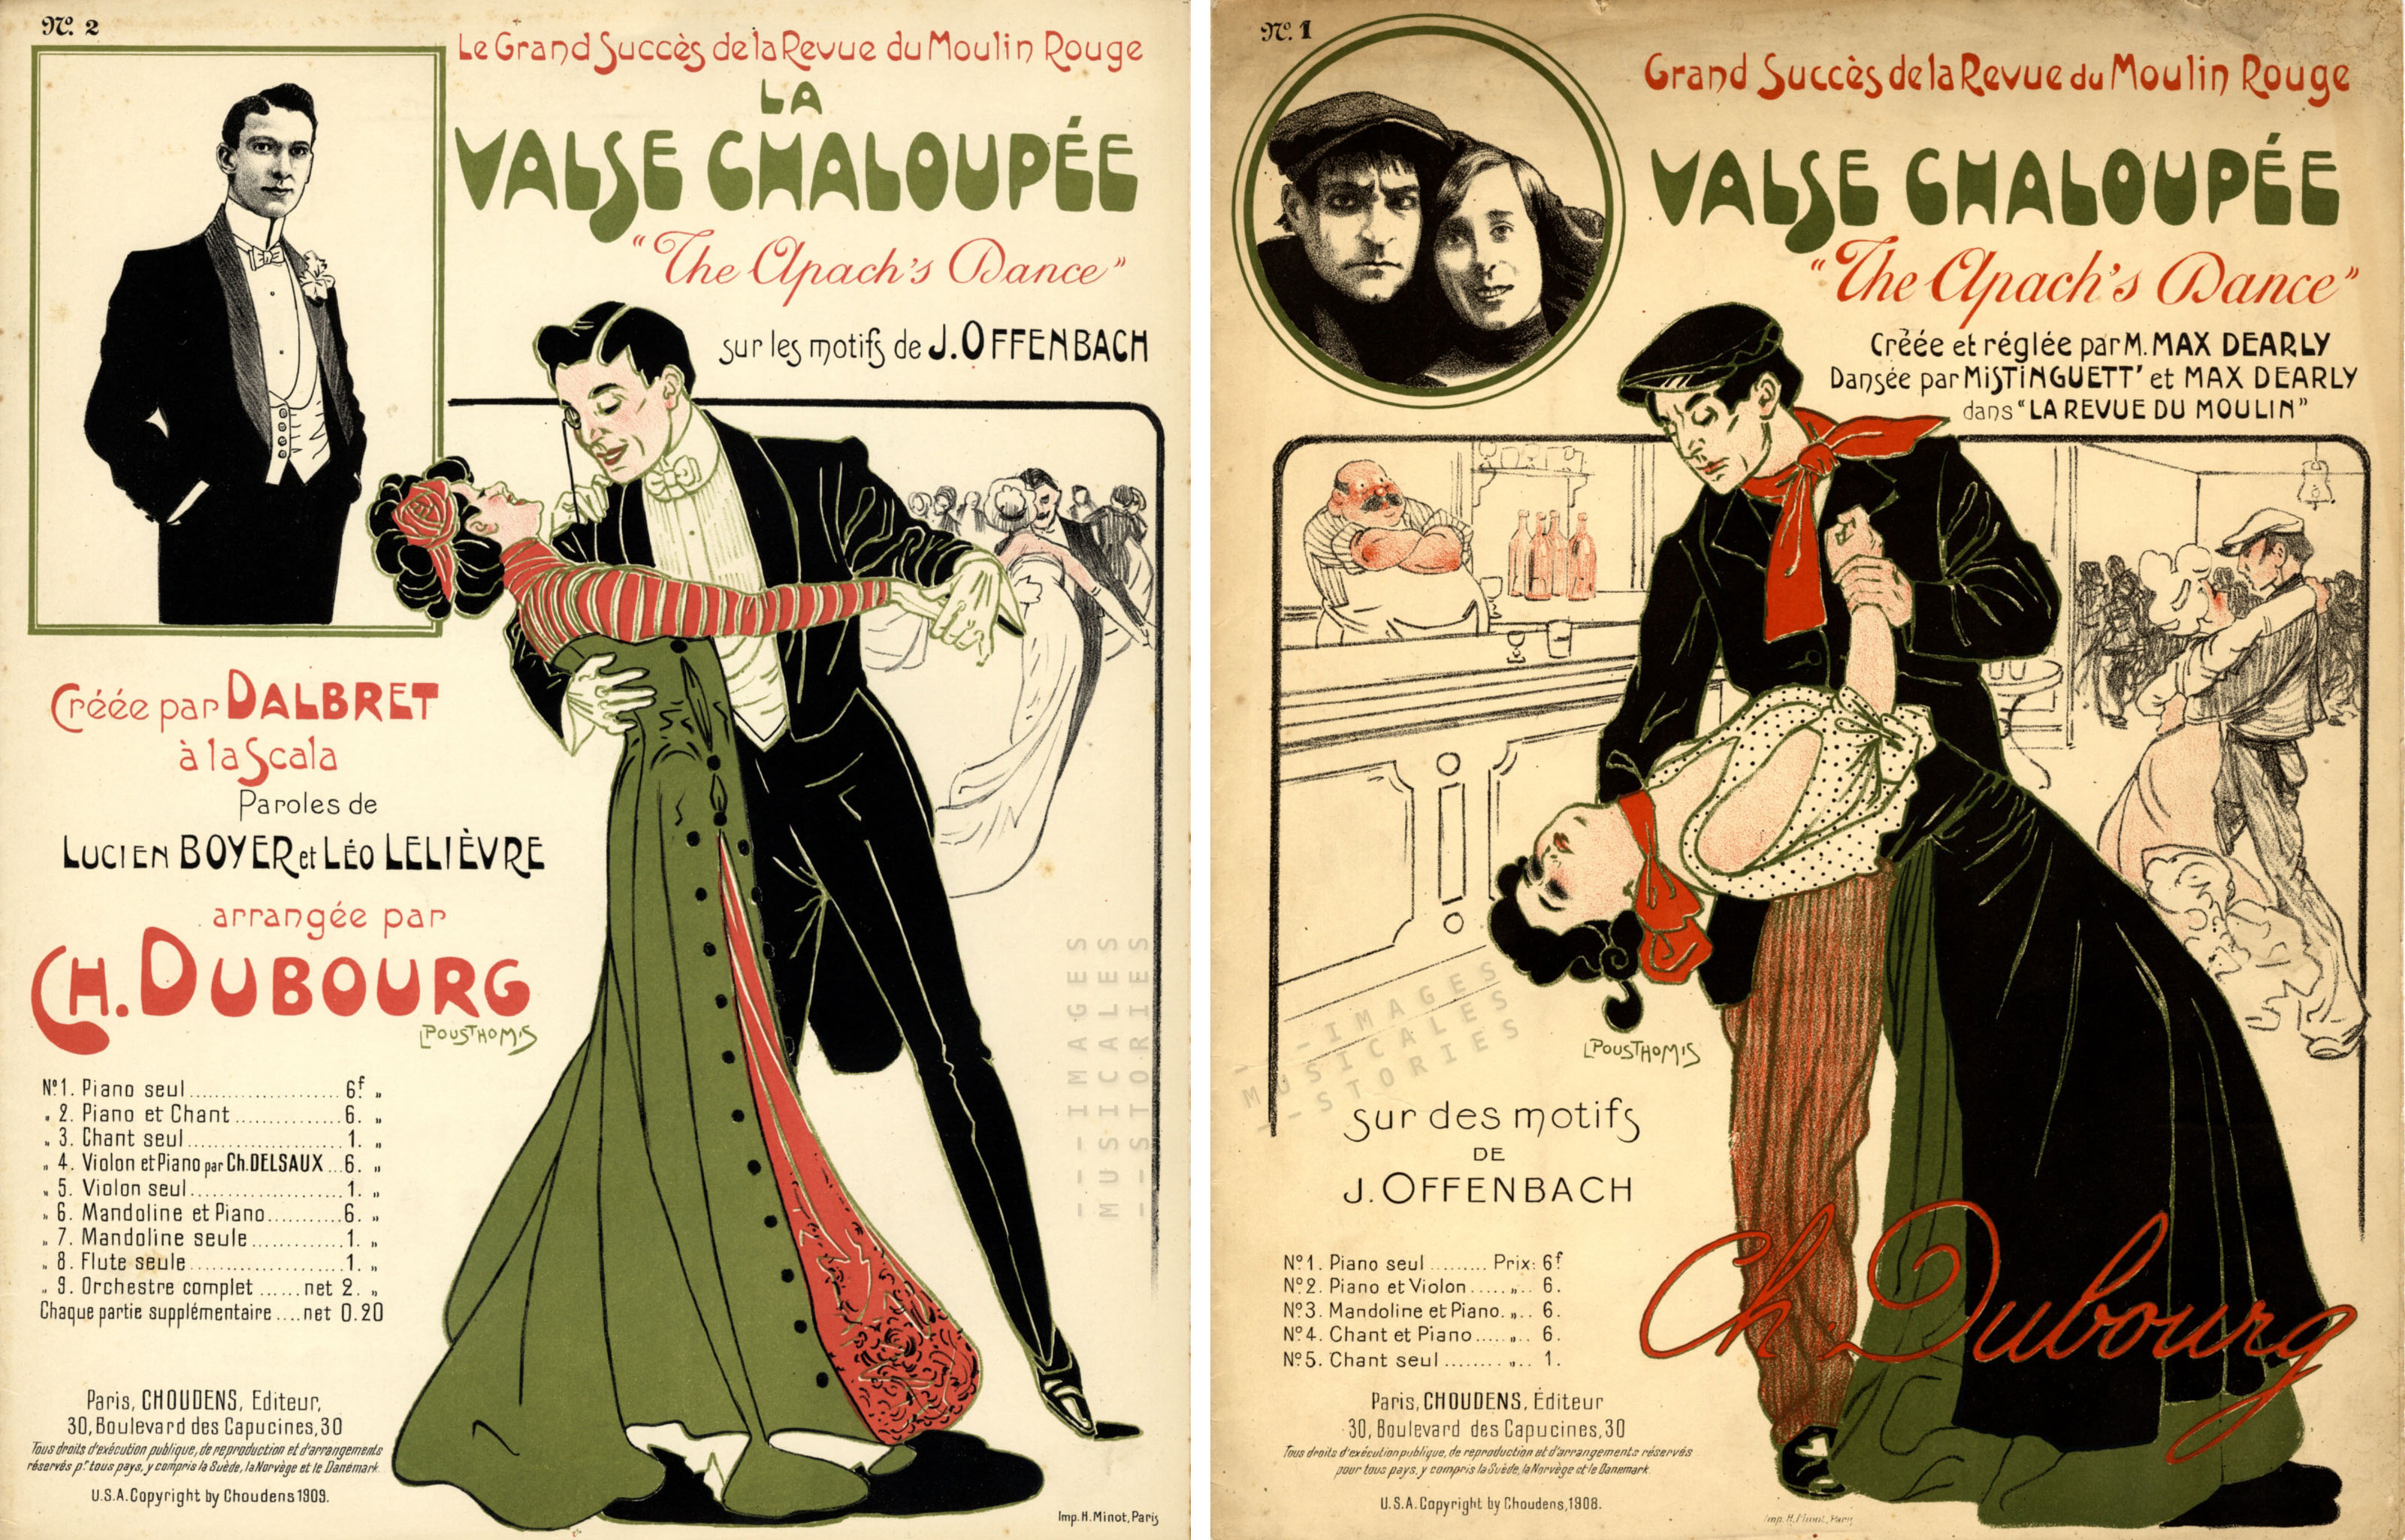 Couples-valse-chaloupée